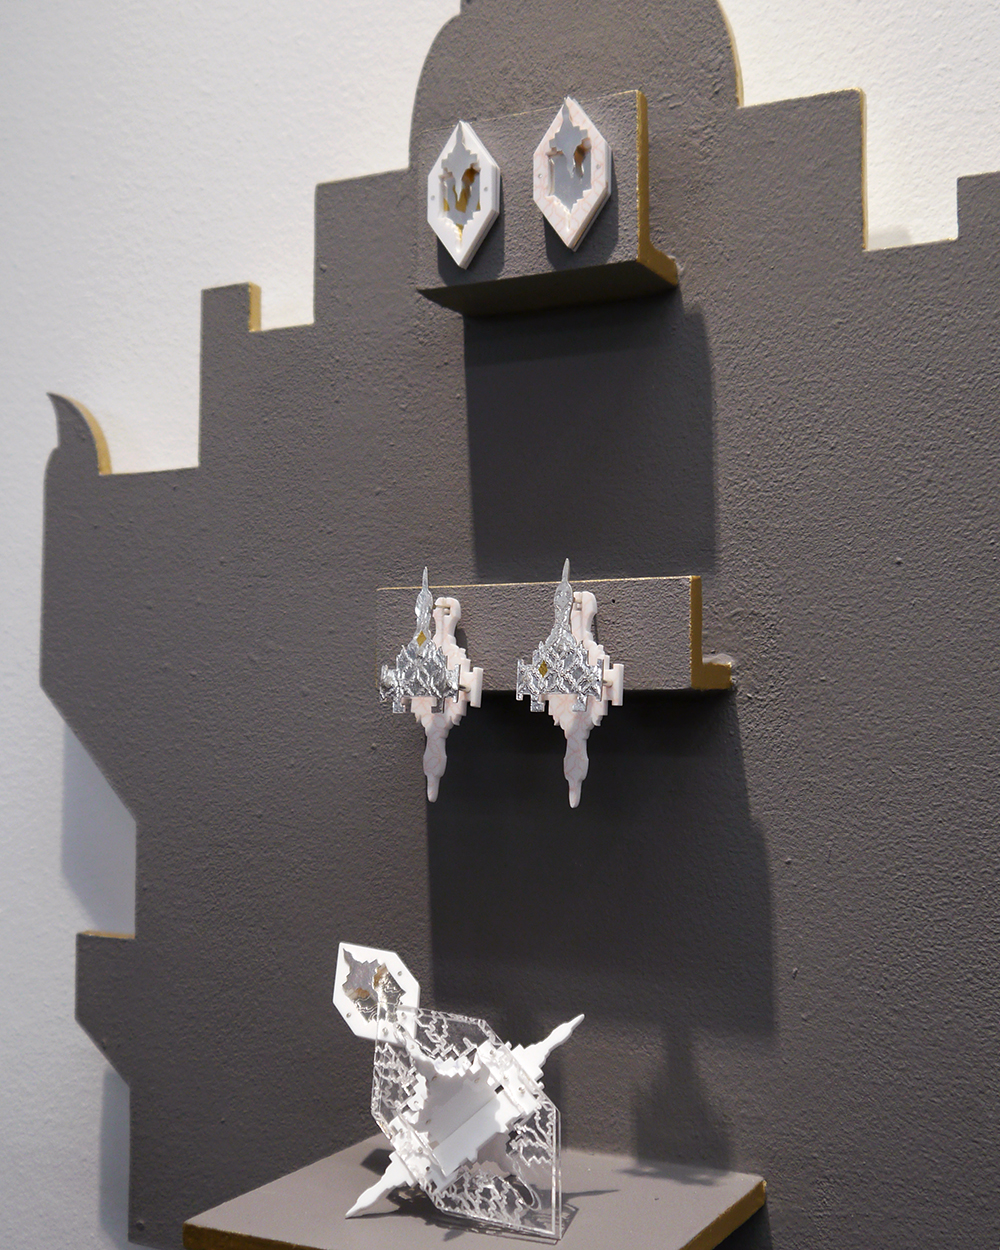 Duncan of Jordanstone College of Art and DEsign, DJCAD, degree show, #djcaddegreeshow, #djcaddegreeshow15, Degree Show 2015, Jewellery, jewellery and metal design, Kaela Hogg